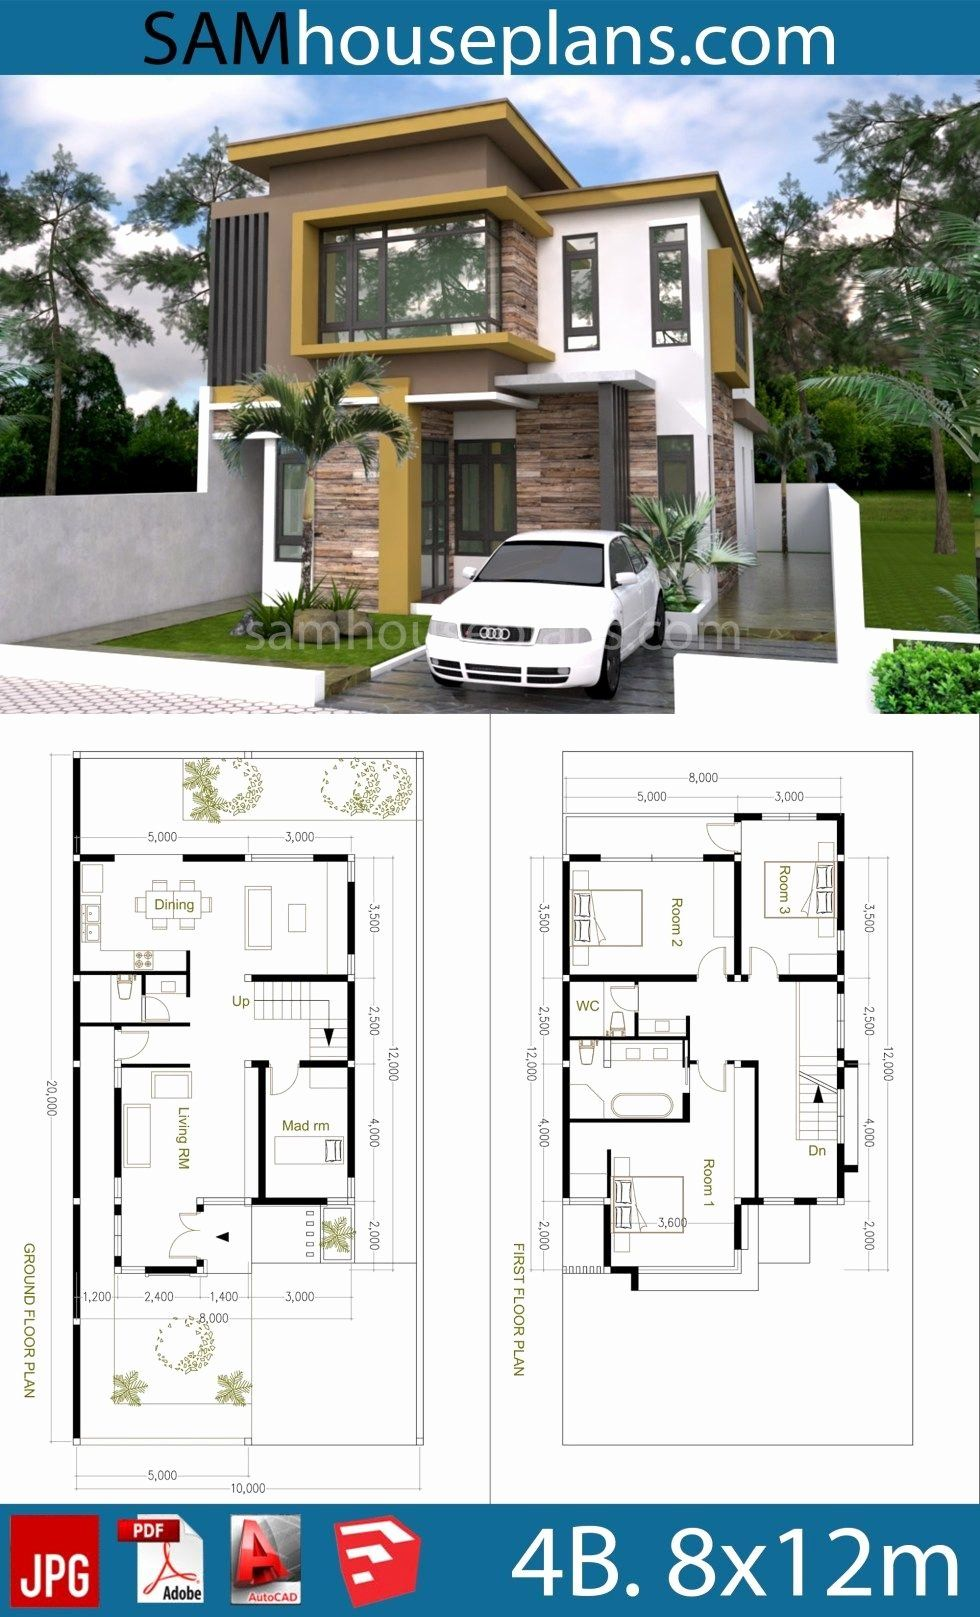 200 000 House Plans New House Plans 8x12m With 4 Bedrooms In 2020 2 Storey House Design Building Plans House Architectural House Plans